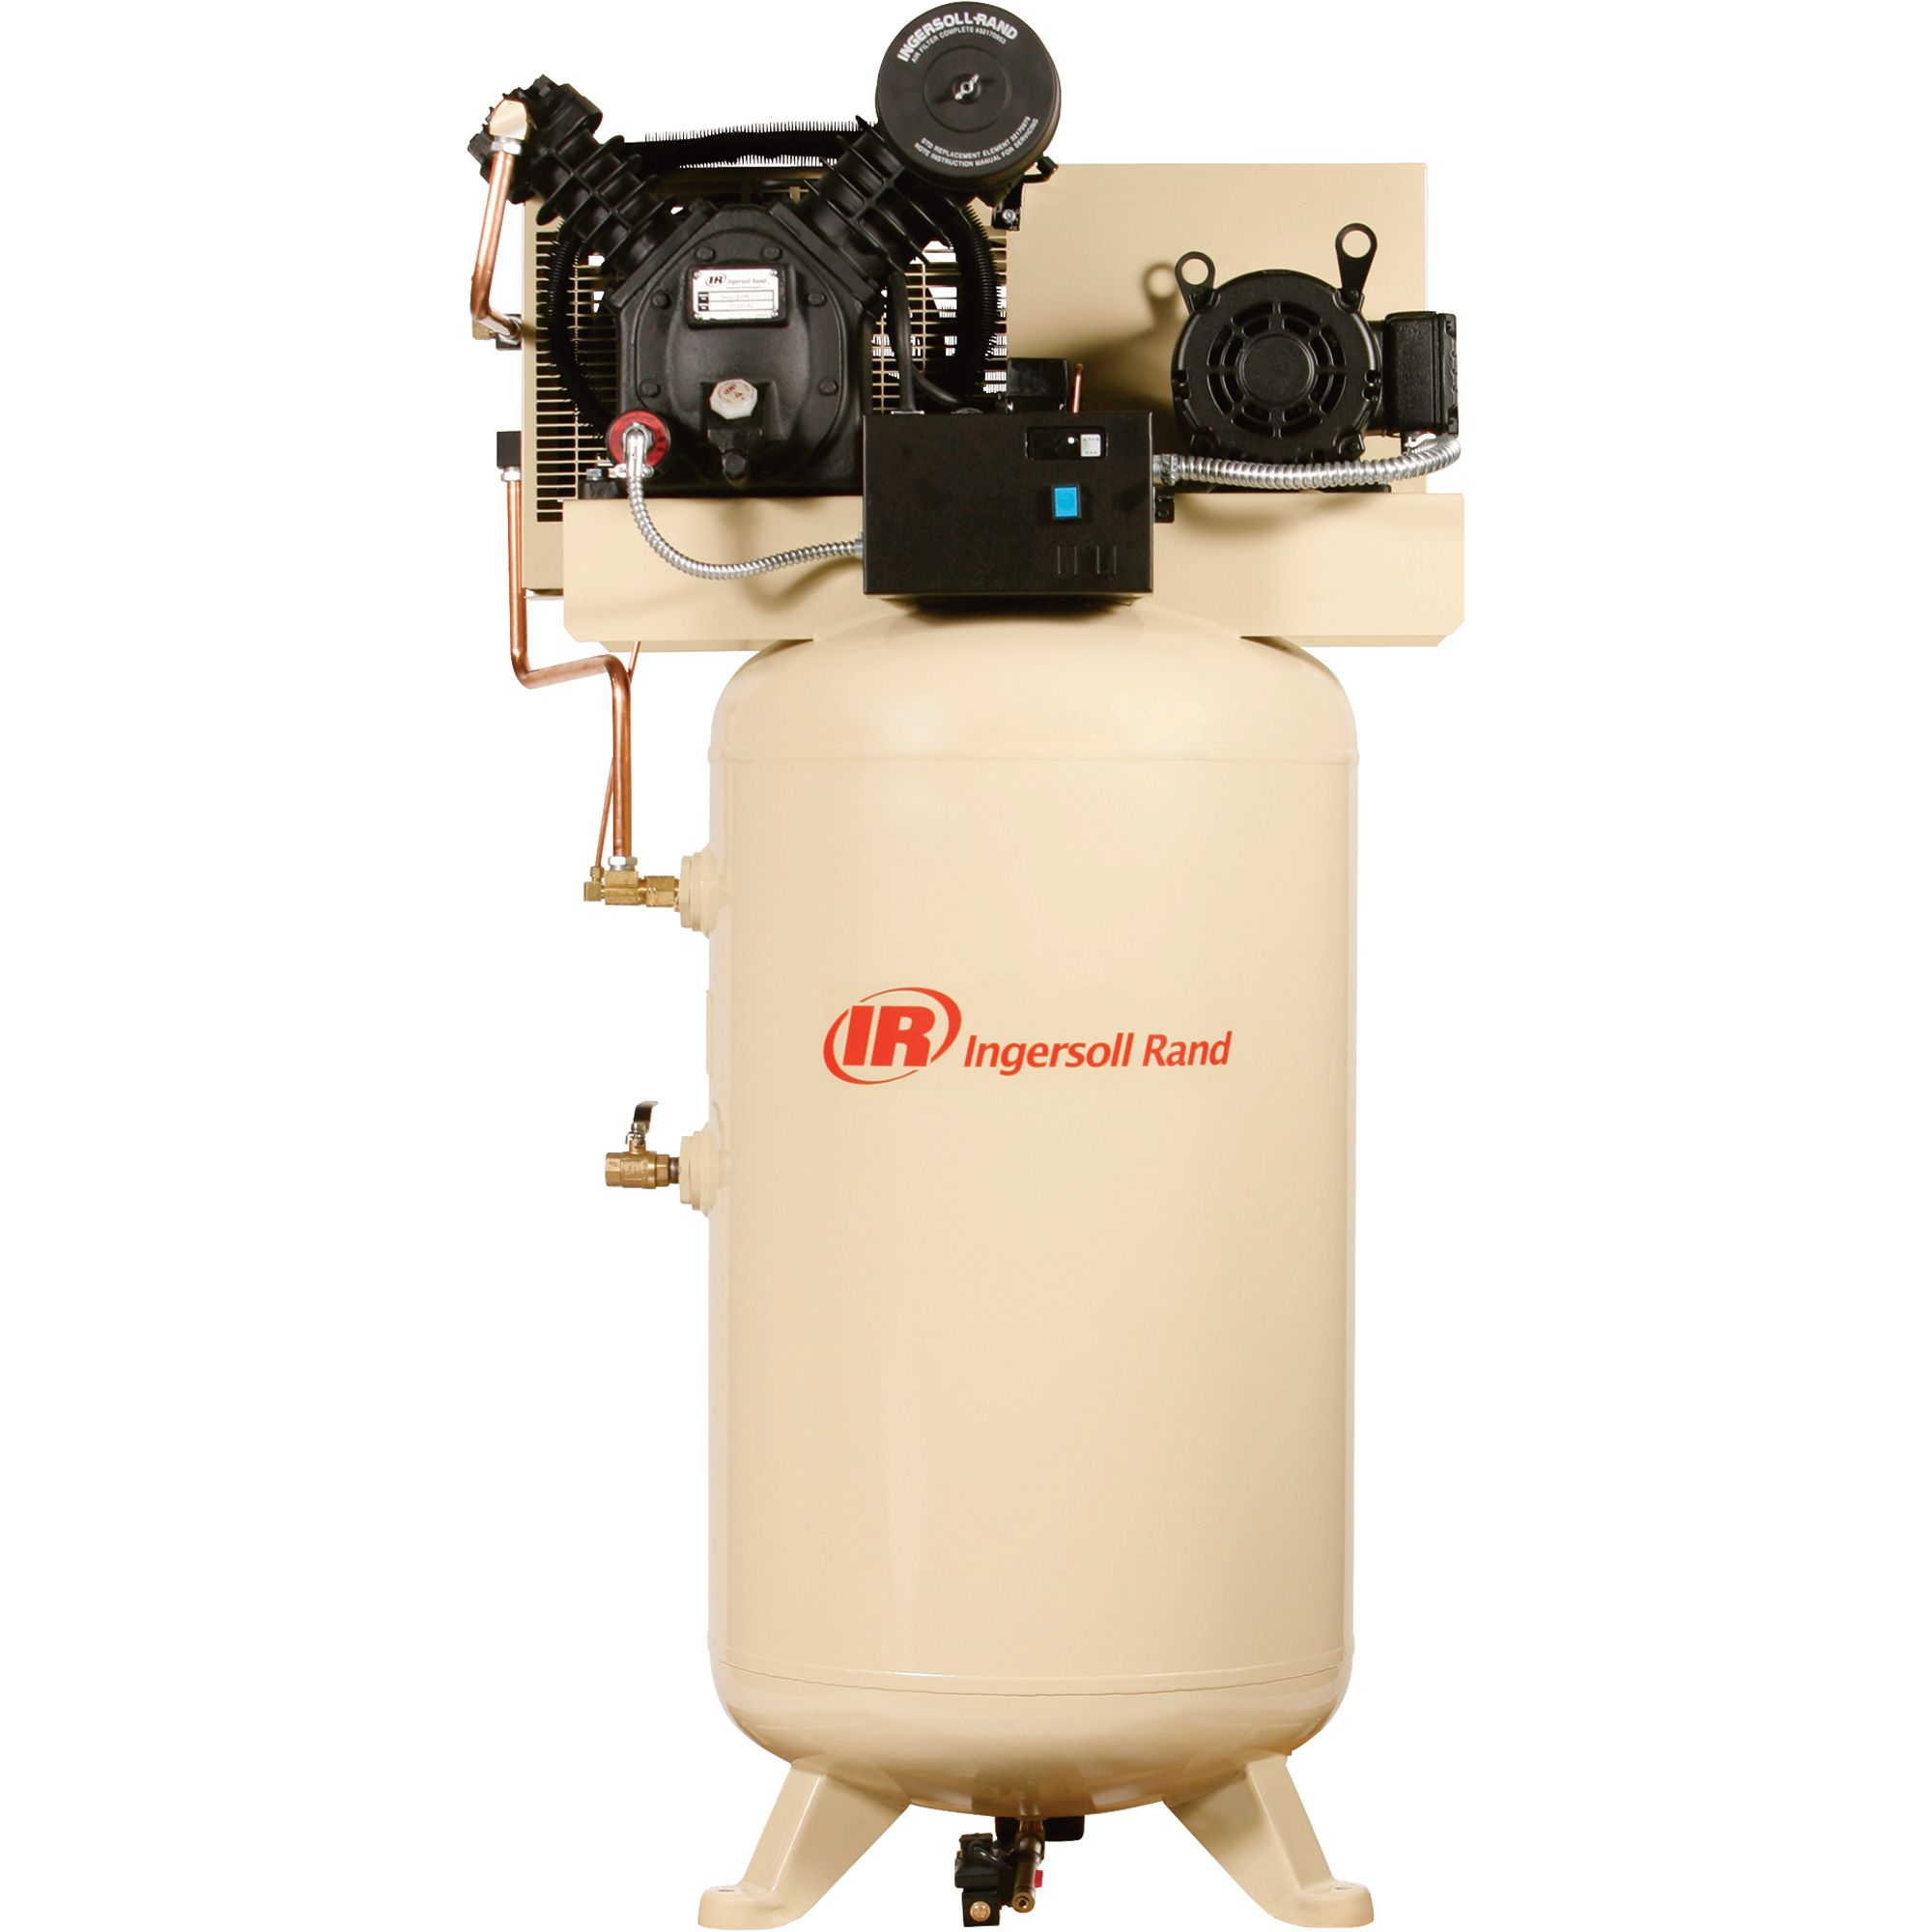 Ingersoll Rand's legendary Type30 air compressors have